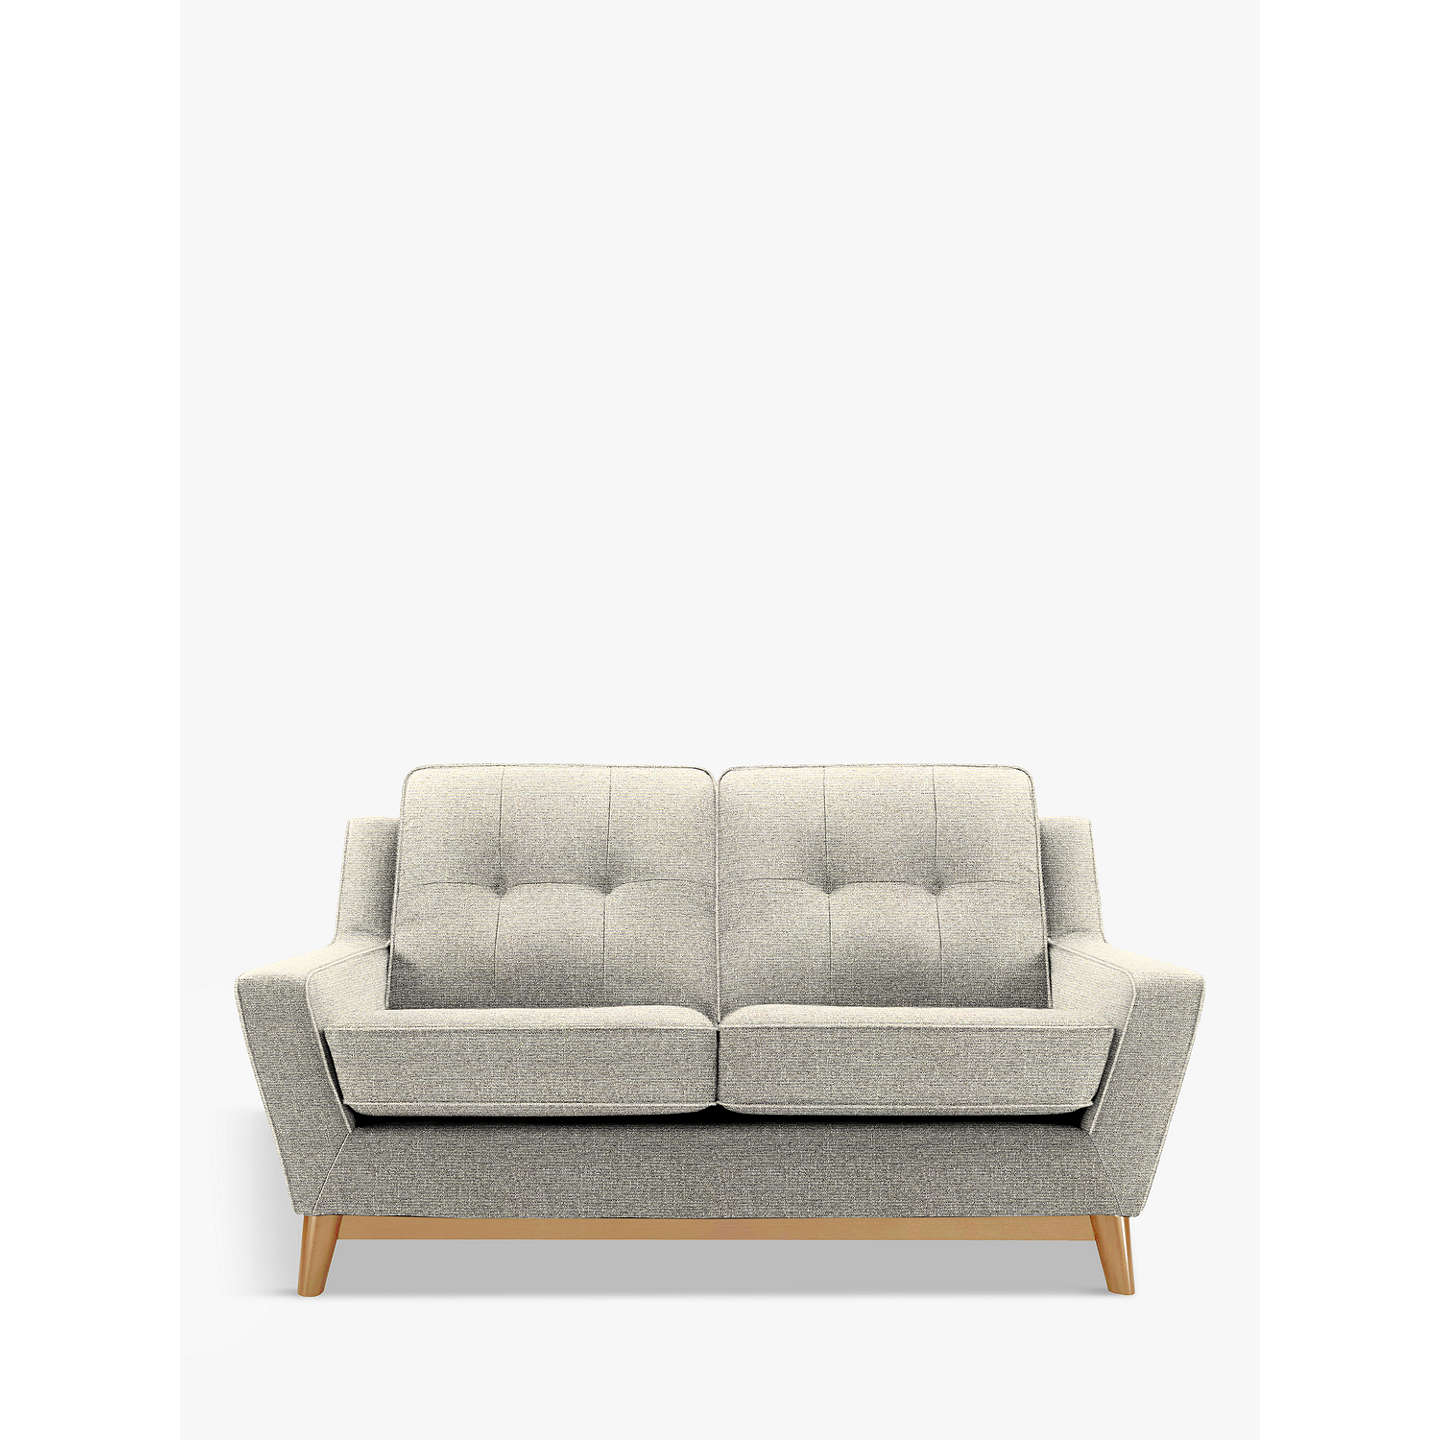 BuyG Plan Vintage The Fifty Three Small 2 Seater Sofa, Etch Granite Online at johnlewis.com